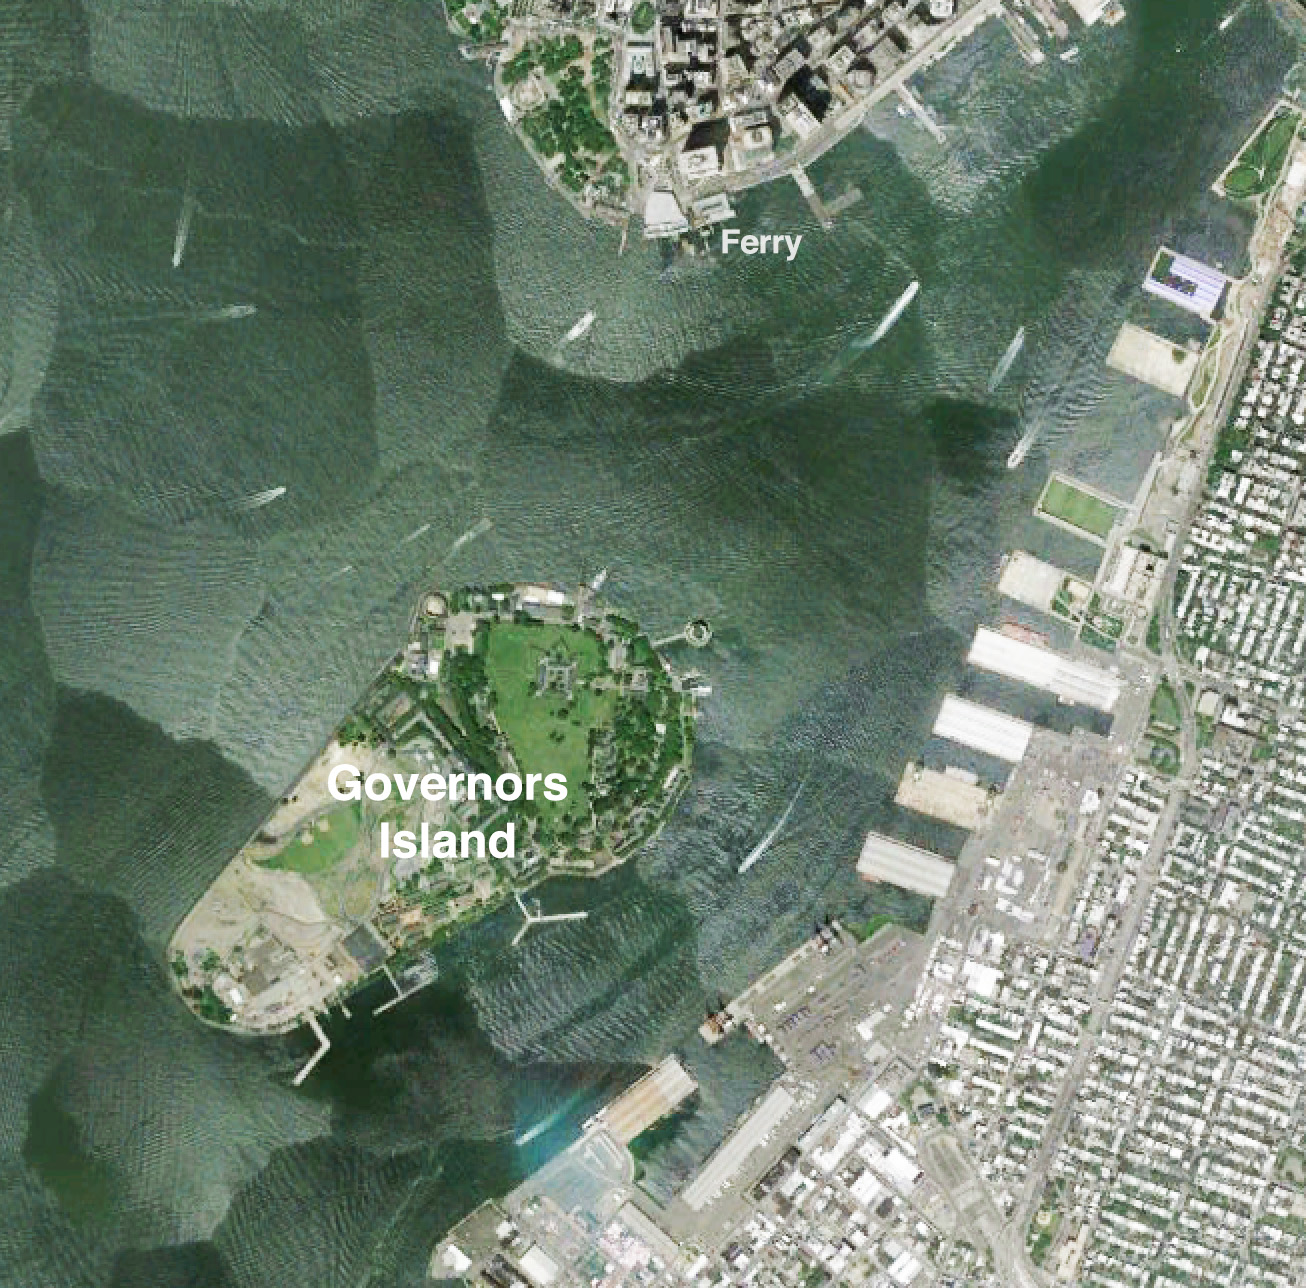 google earth showing governors island s urban context